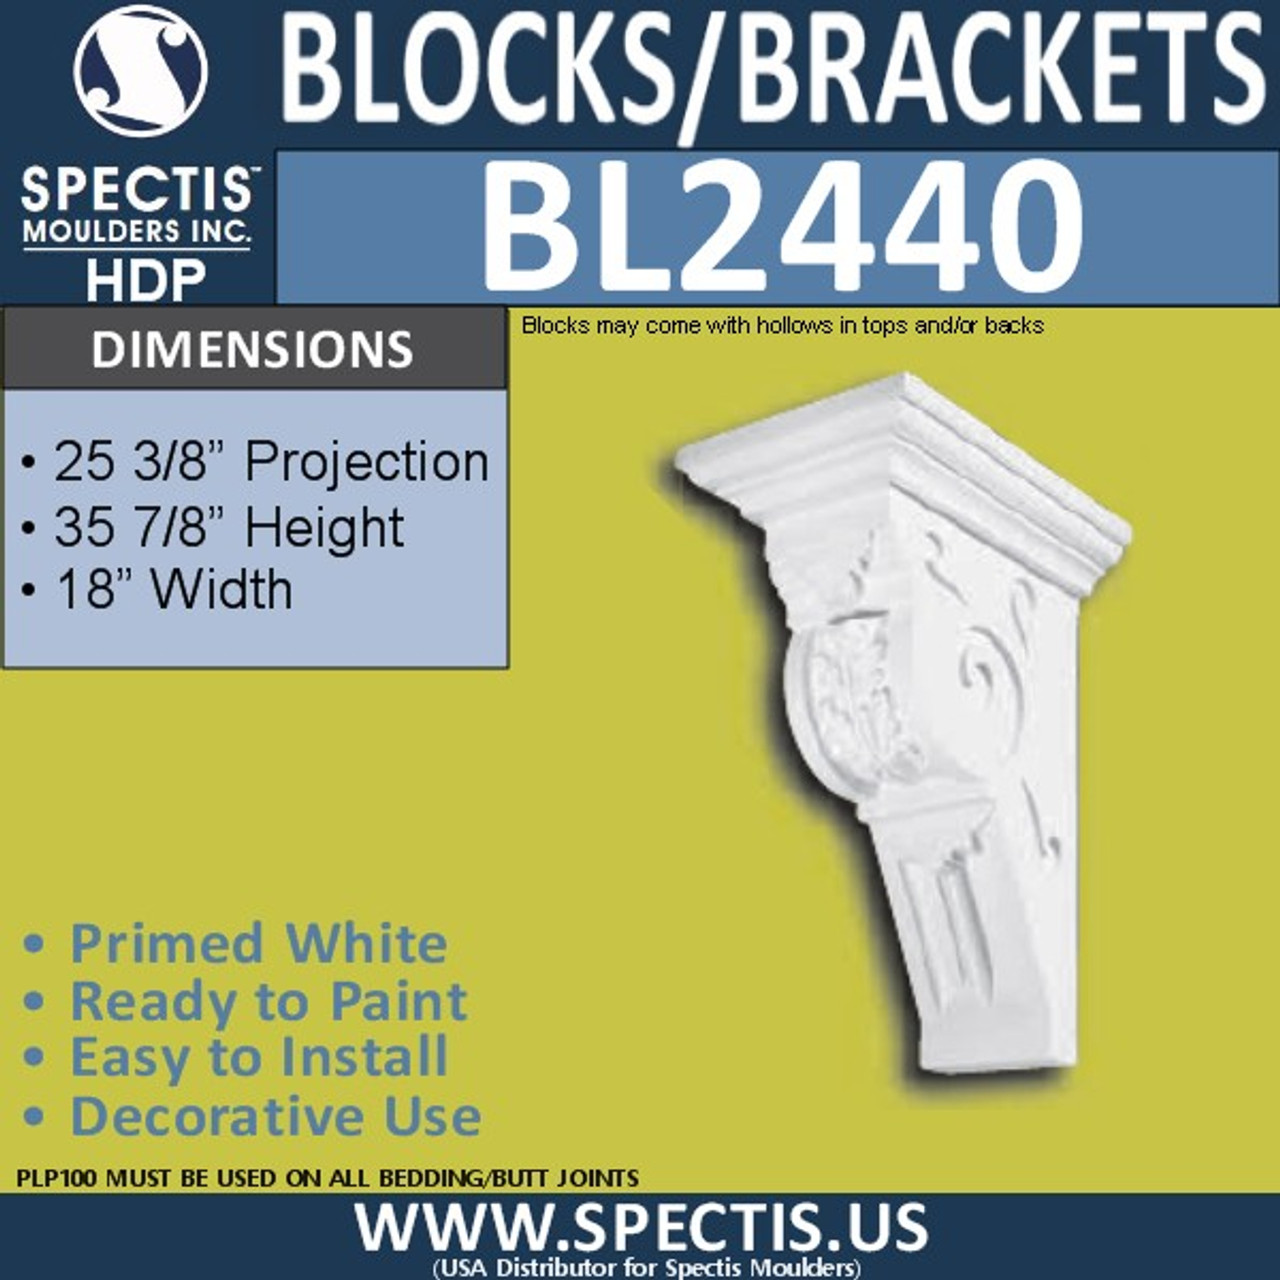 "BL2440 Eave Block or Bracket 17.75""W x 35.5""H x 25"" P"